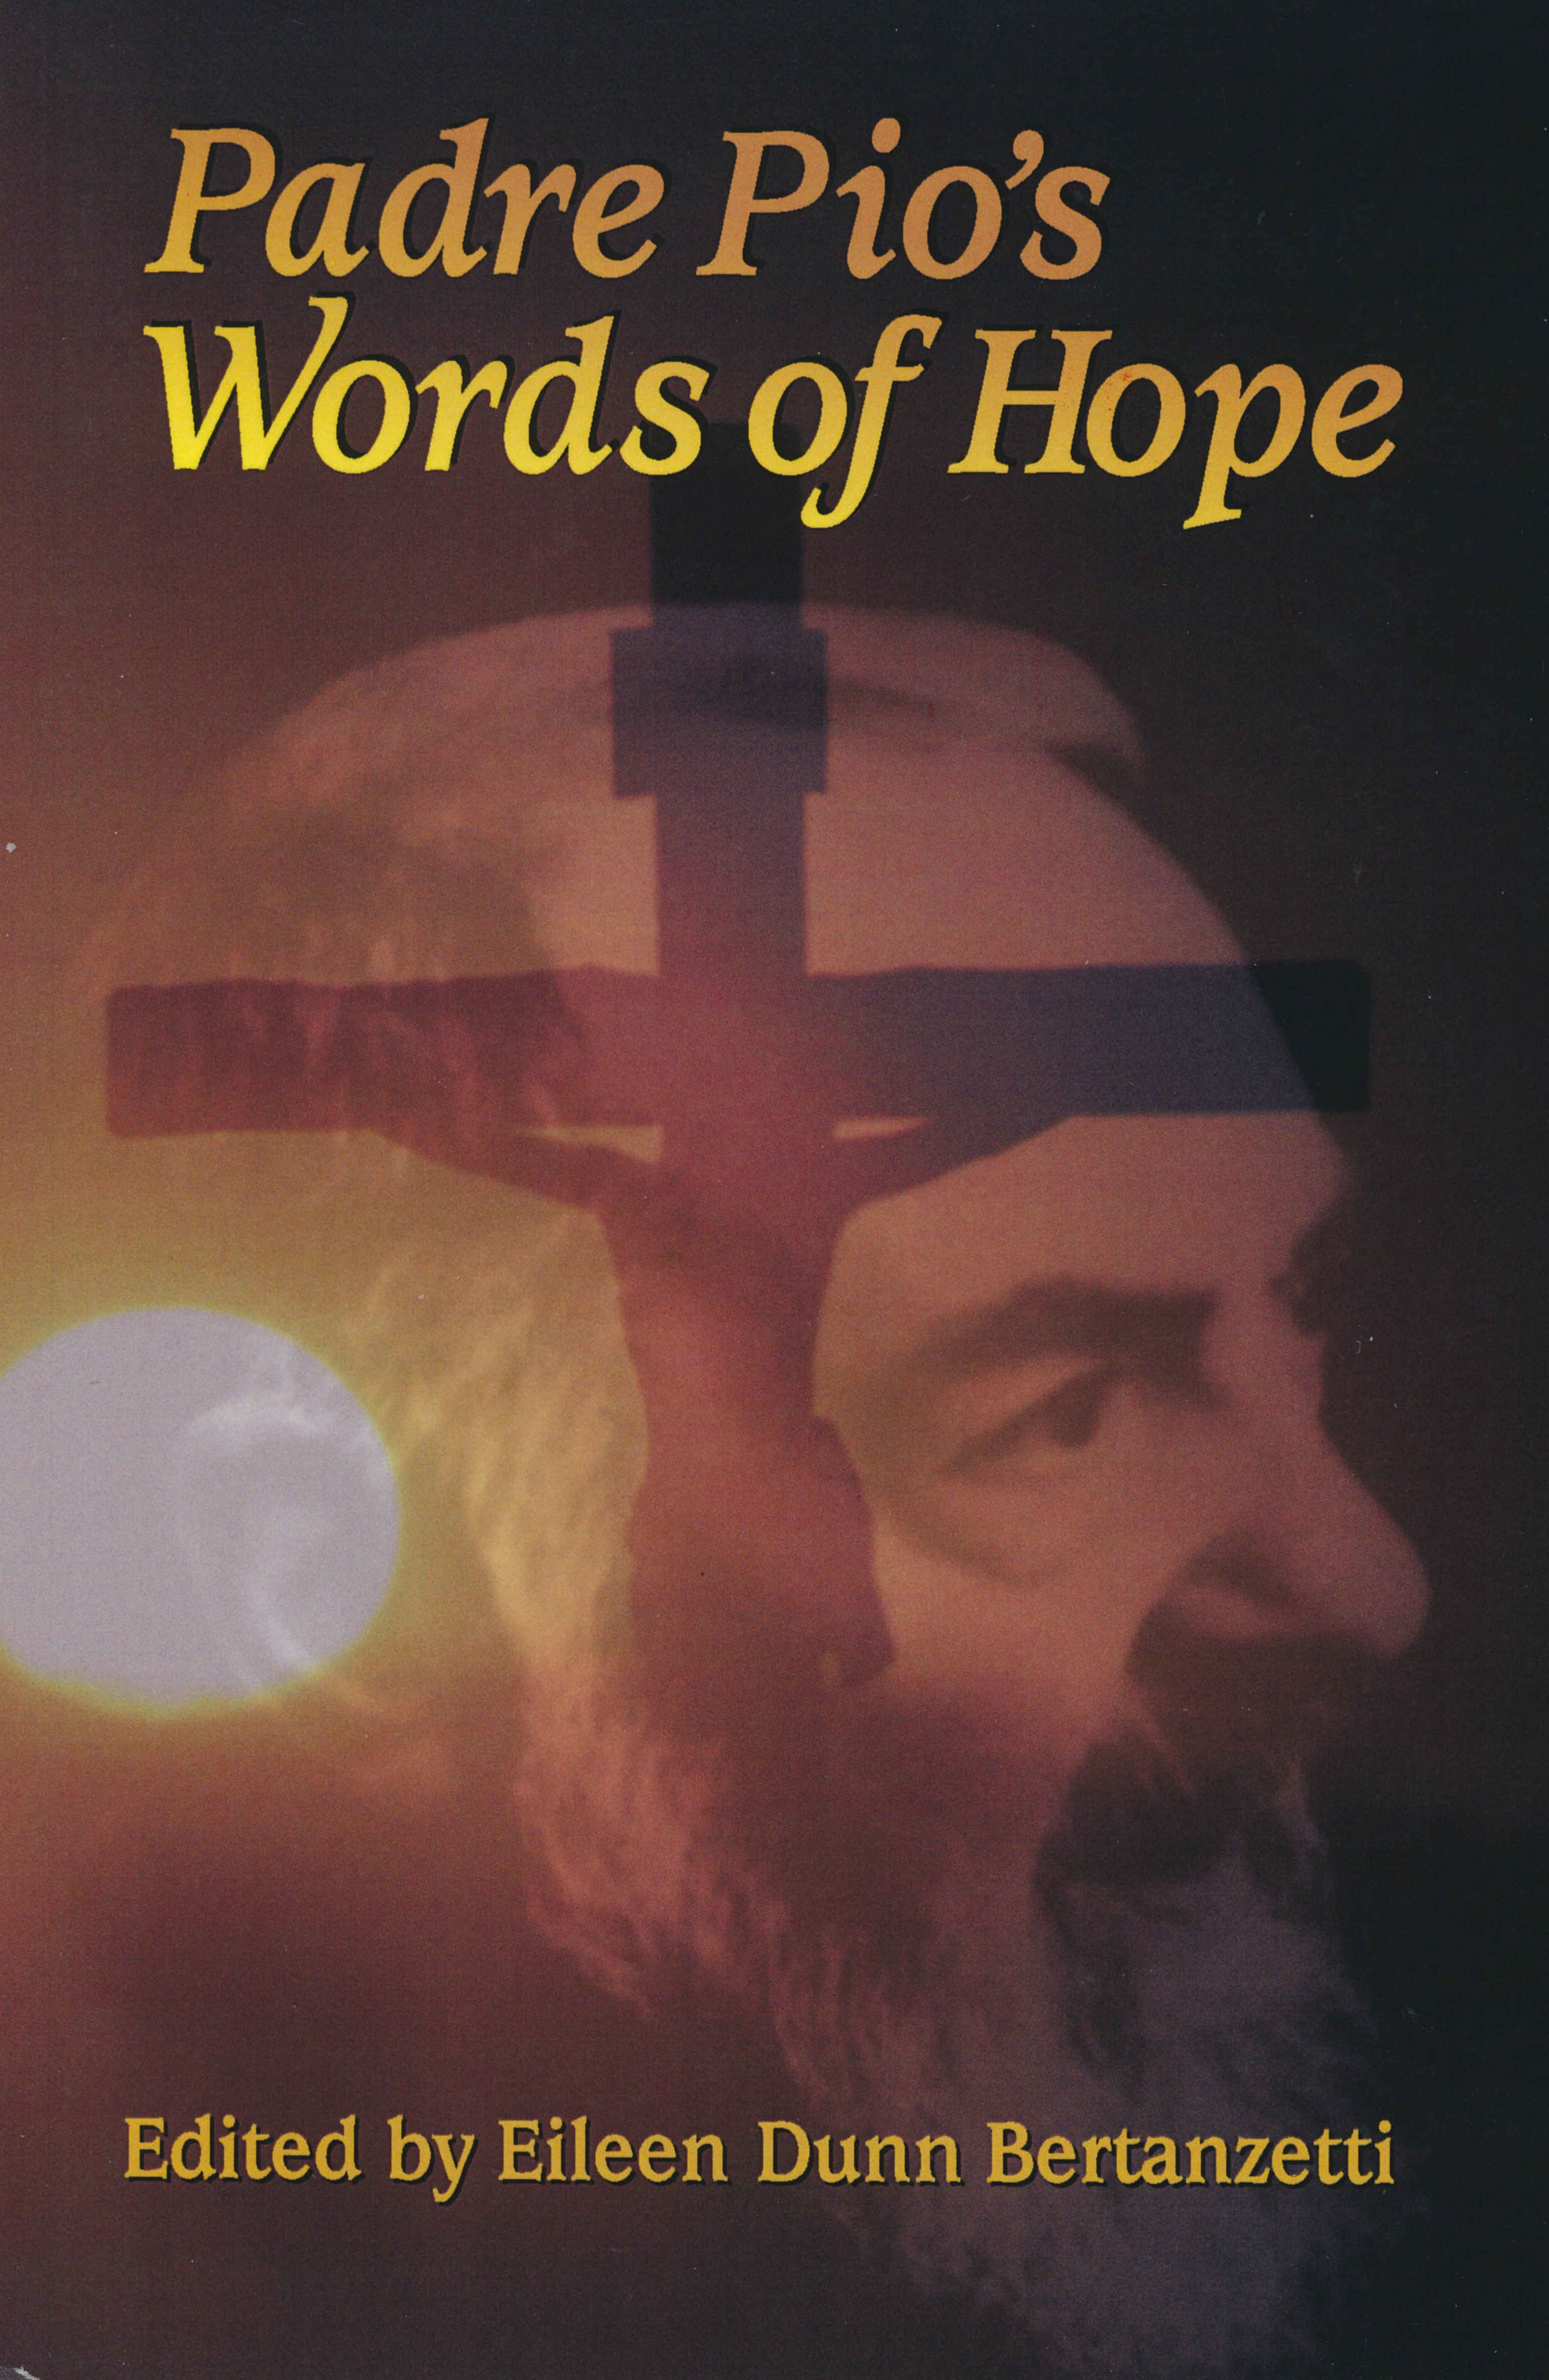 Padre Pio's Words of Hope by Eileen Dunn Bertanzetti 108-9780879736941